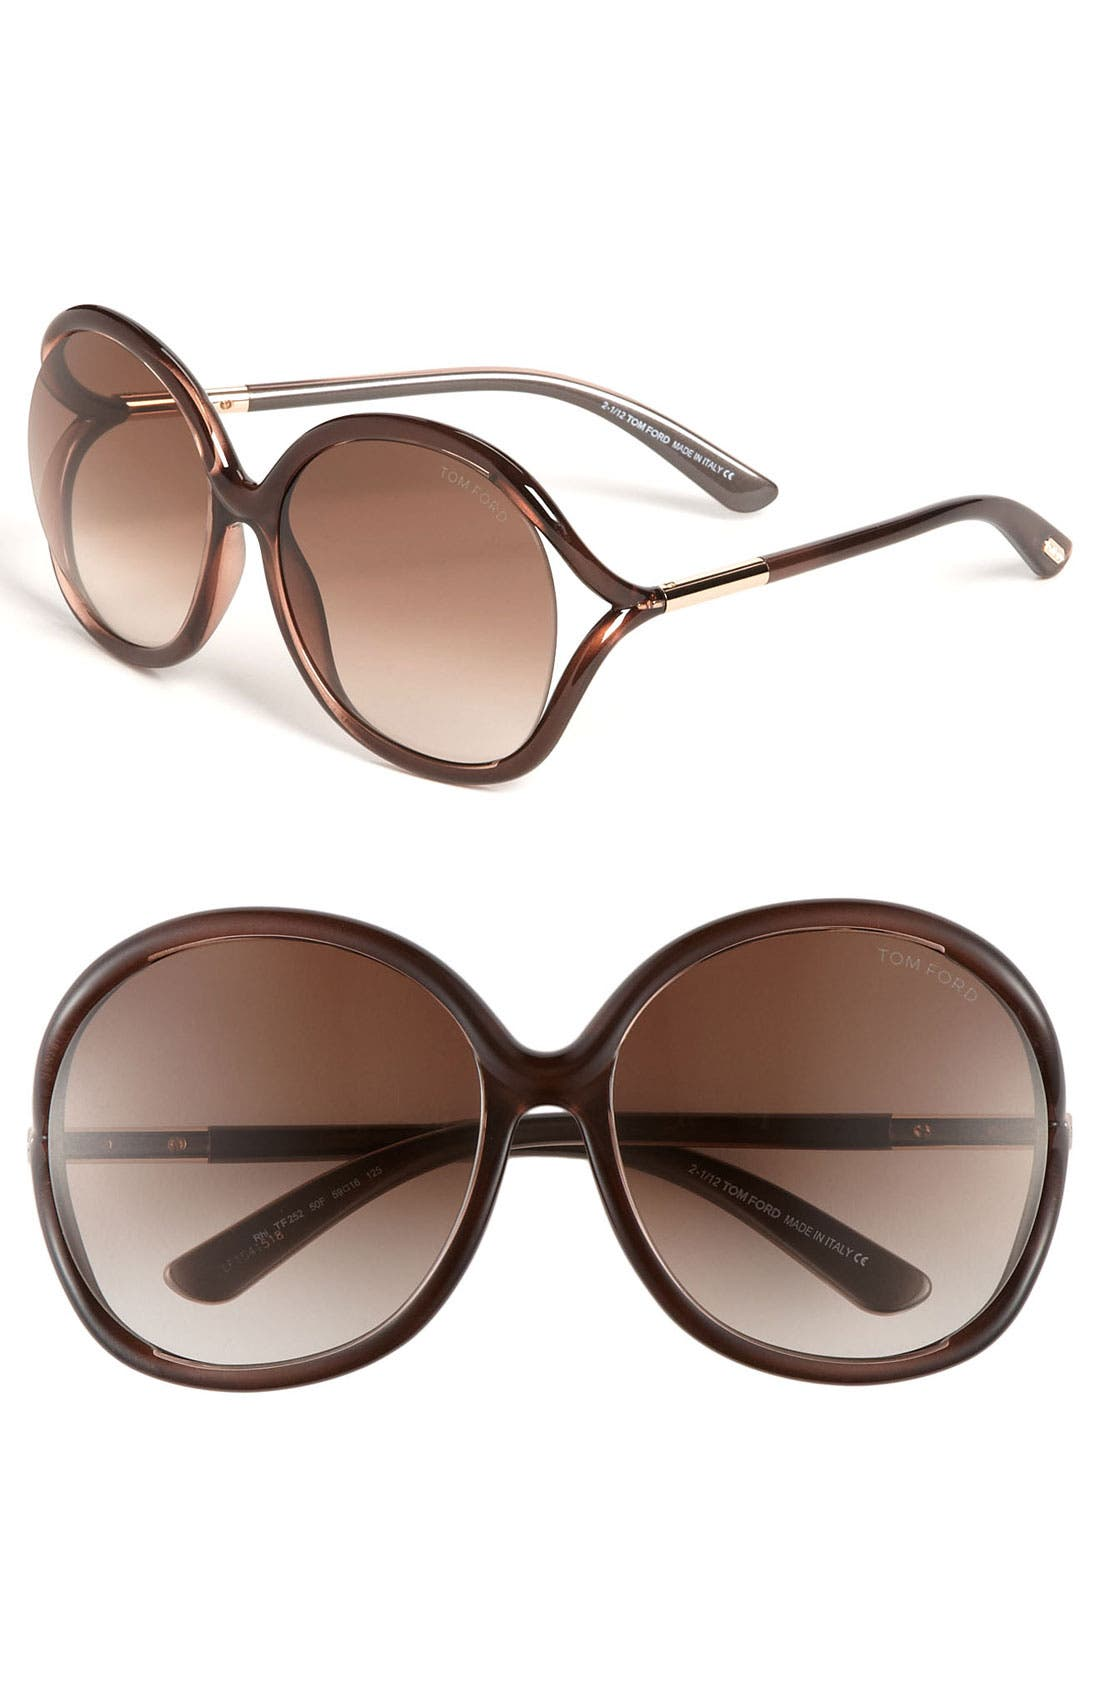 Main Image - Tom Ford 59mm Oversized Sunglasses